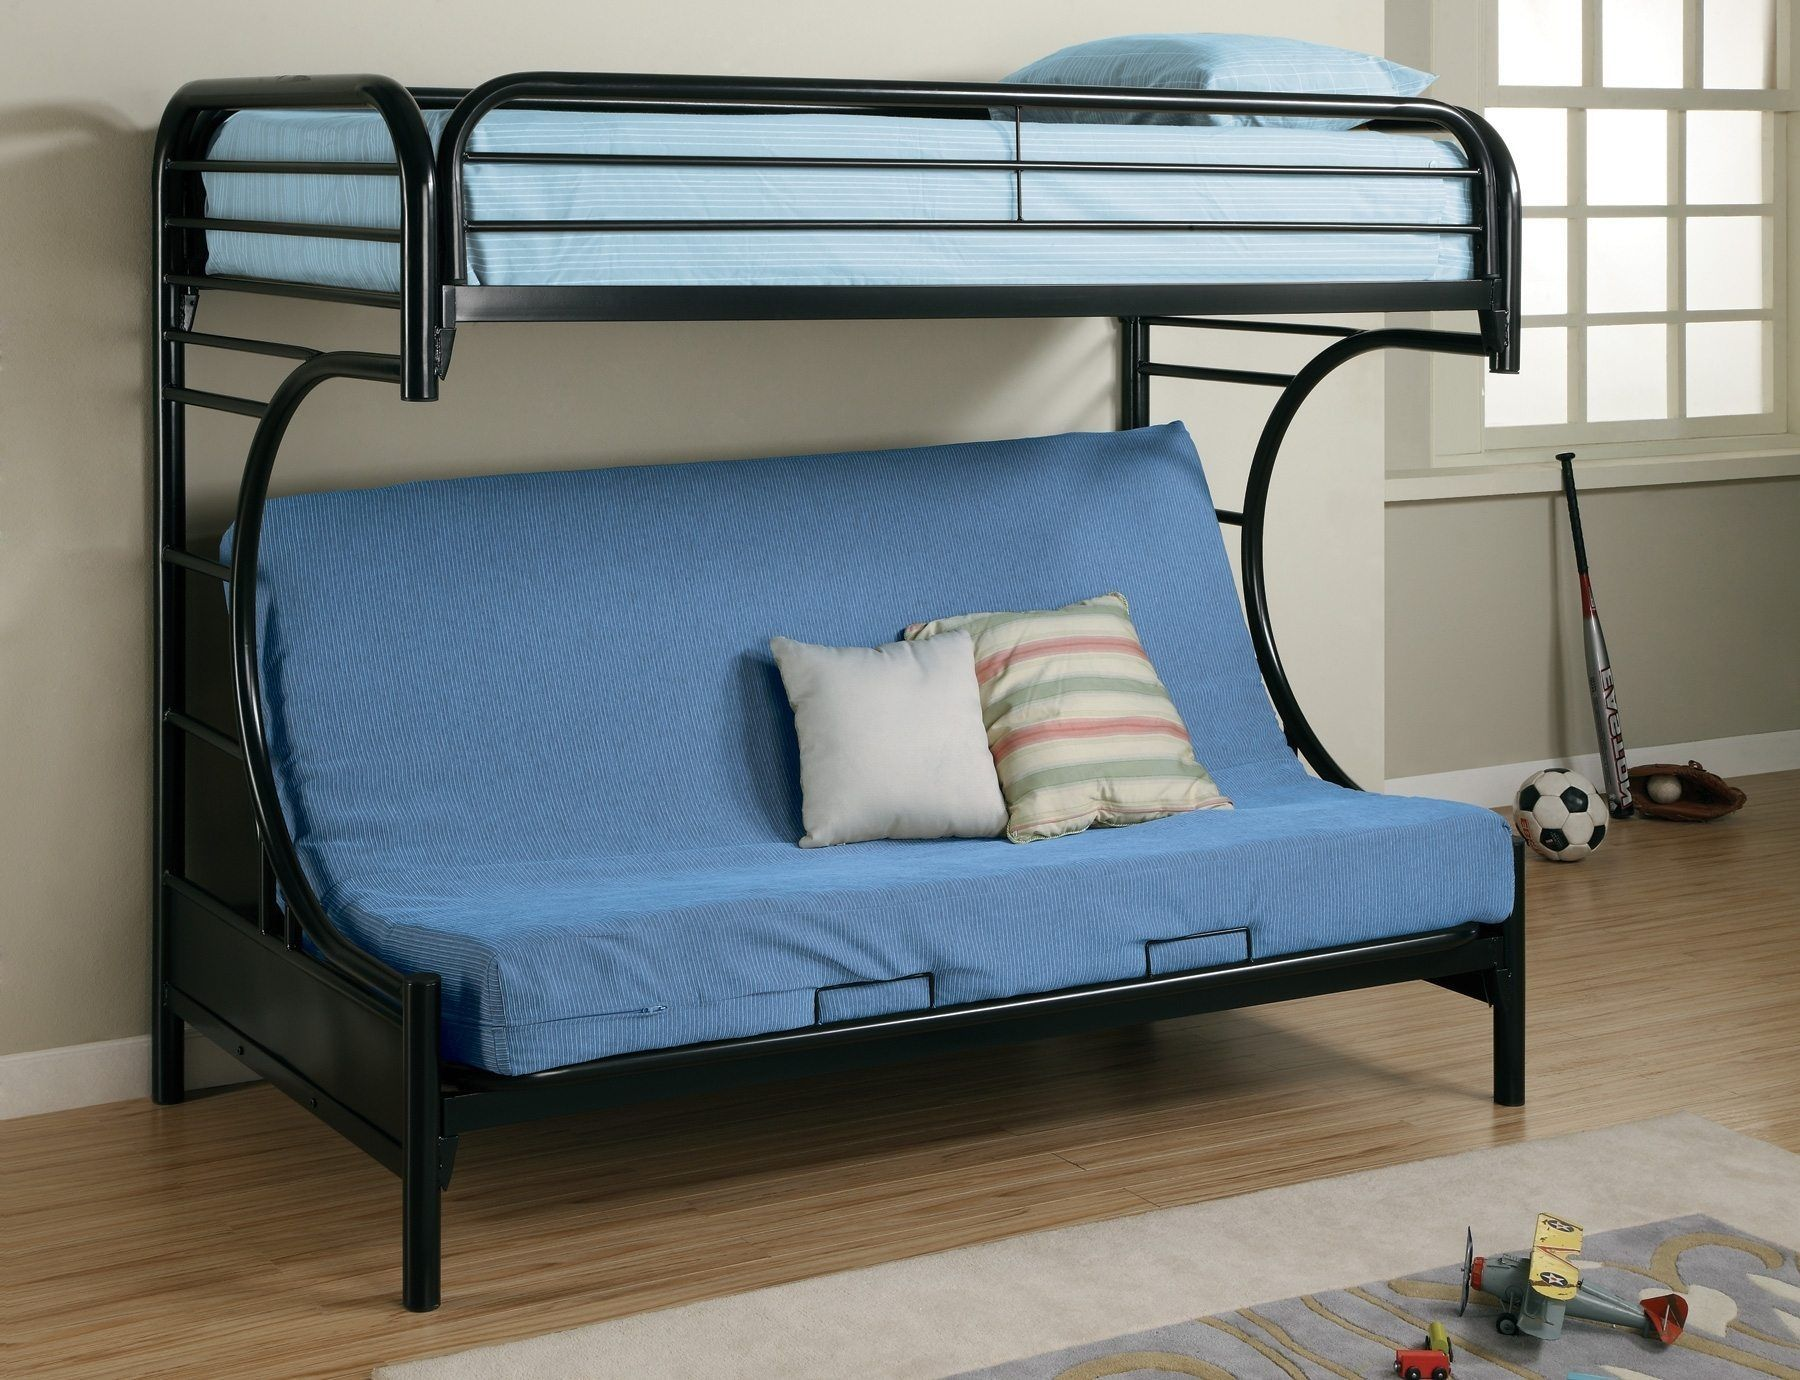 Blue Couch That Turns Into Bunk Beds Bunk bed designs